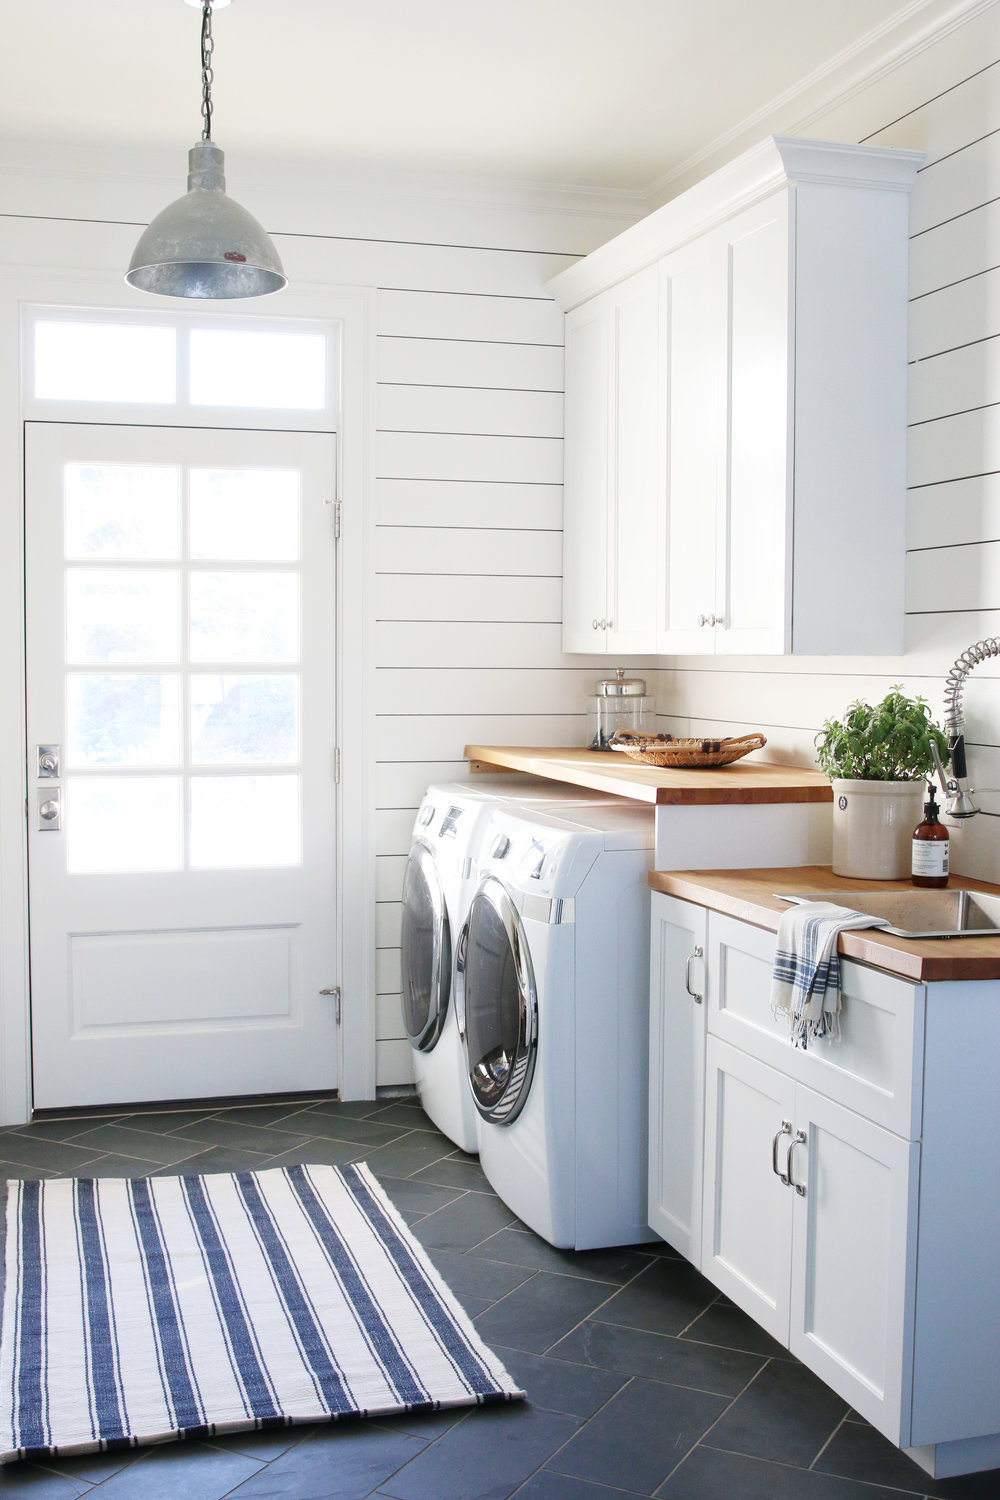 Get the Look: Laundry Room